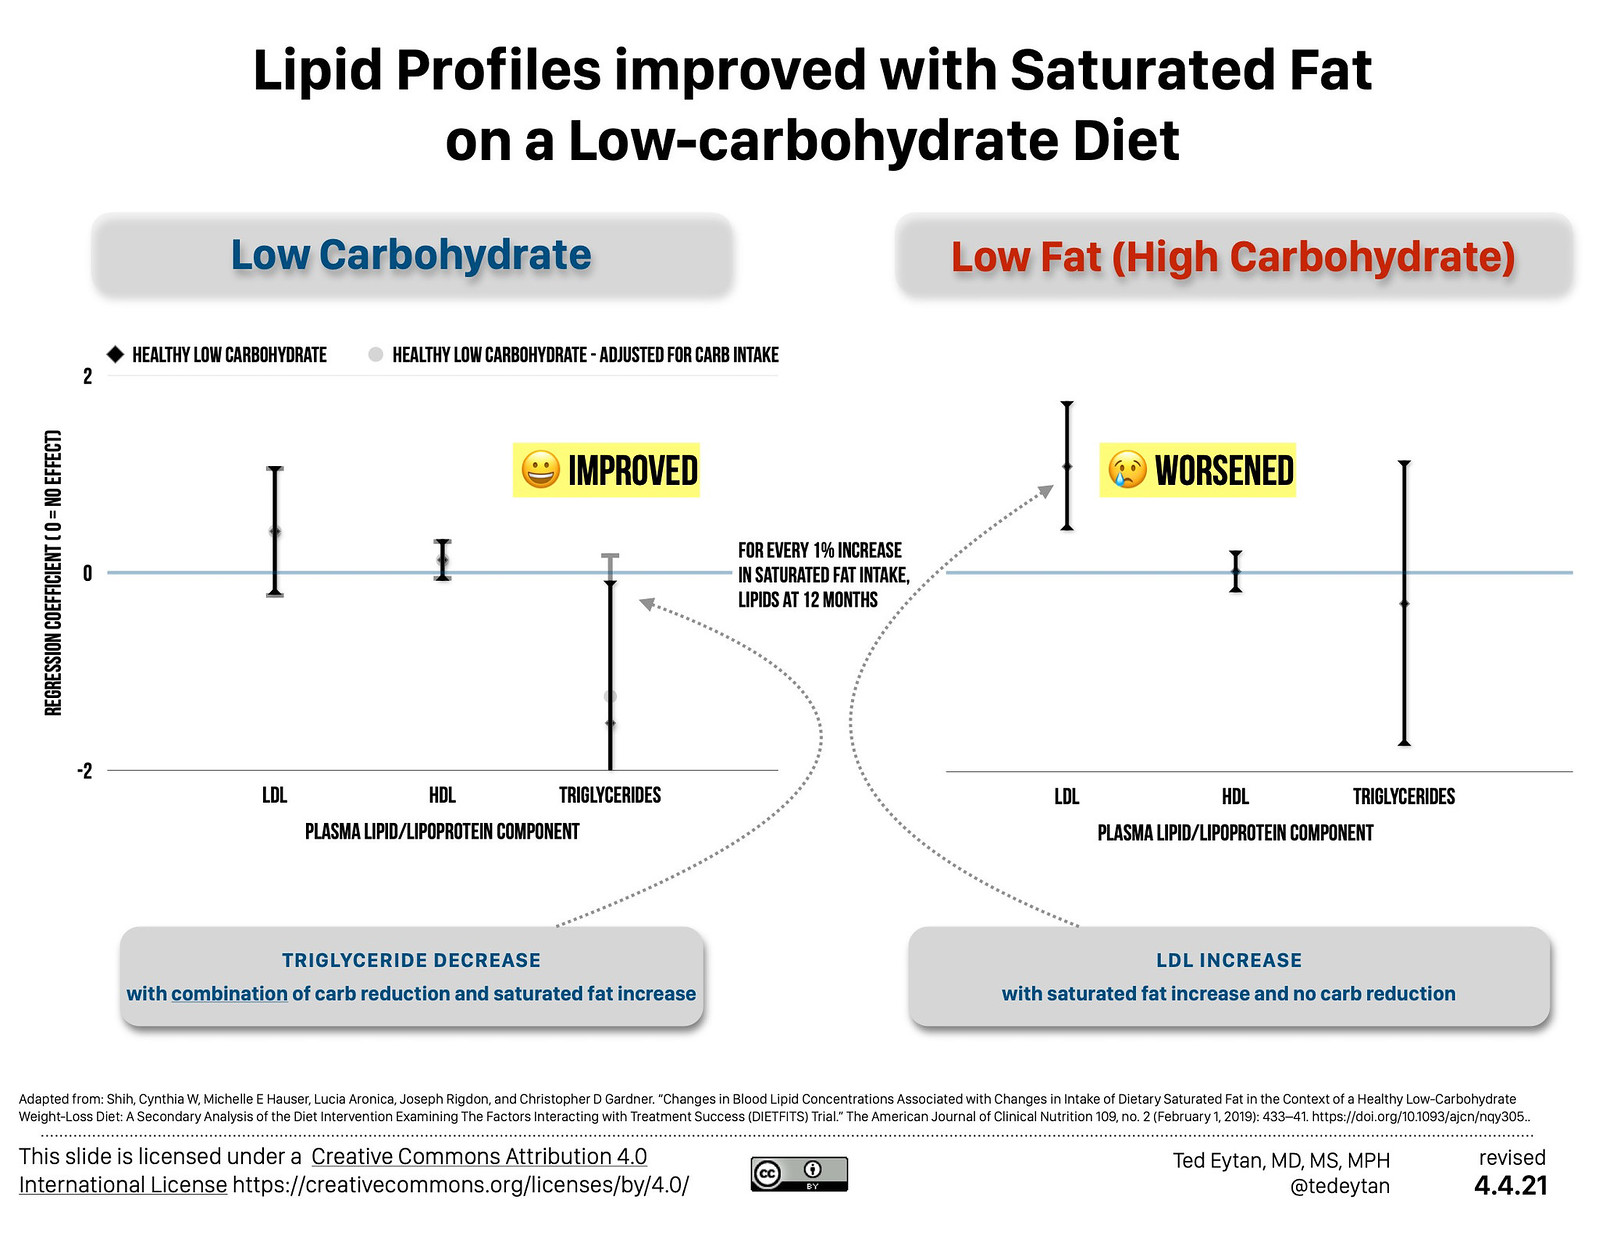 Just Read: Lipid profile, improved with saturated fat intake on a low-carbohydrate diet, and it's shown accurately